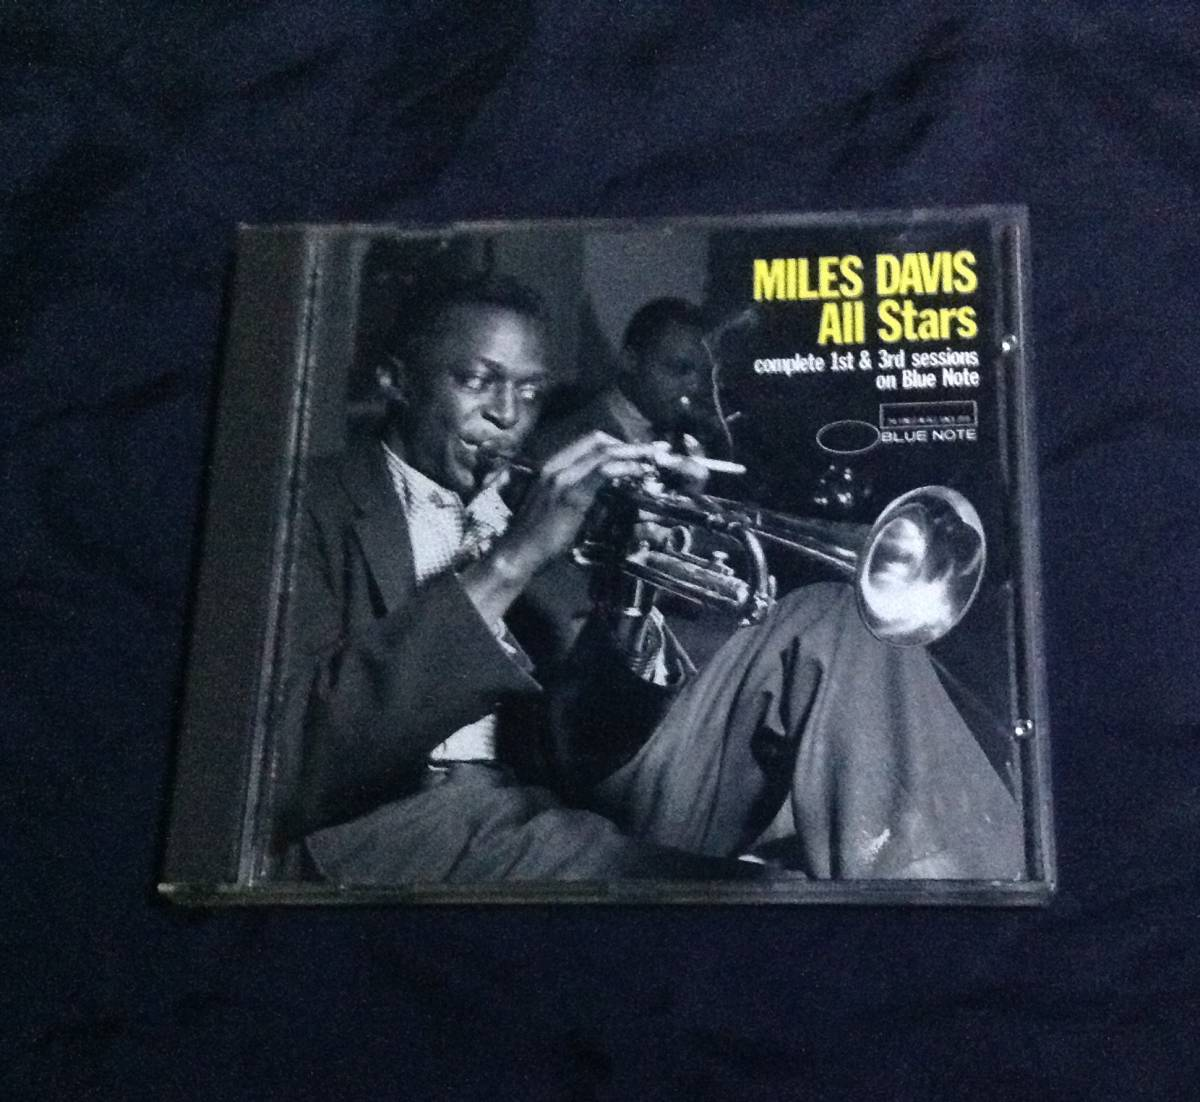 CD マイルス・デイビス MILES DAVIS/ Complete 1st&3rd Sessions On Blue Note CJ28-5056_画像1